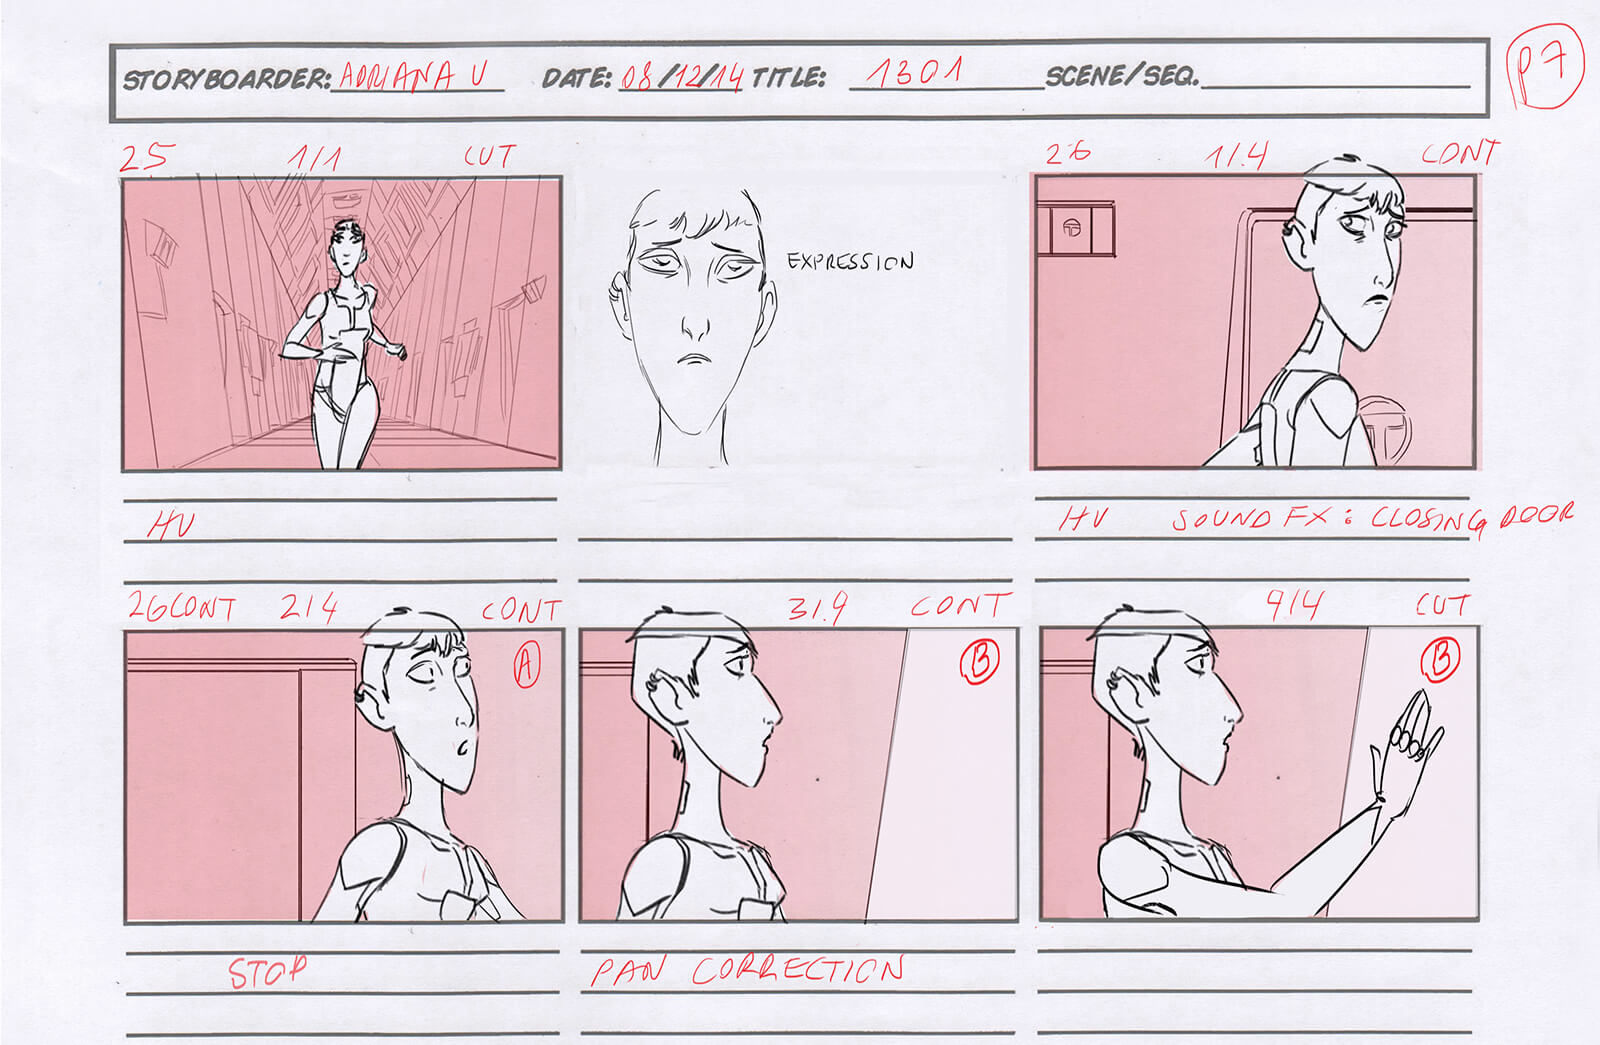 Red and white sketched storyboard for the film REA depicting the action from the beginning of the story to the end